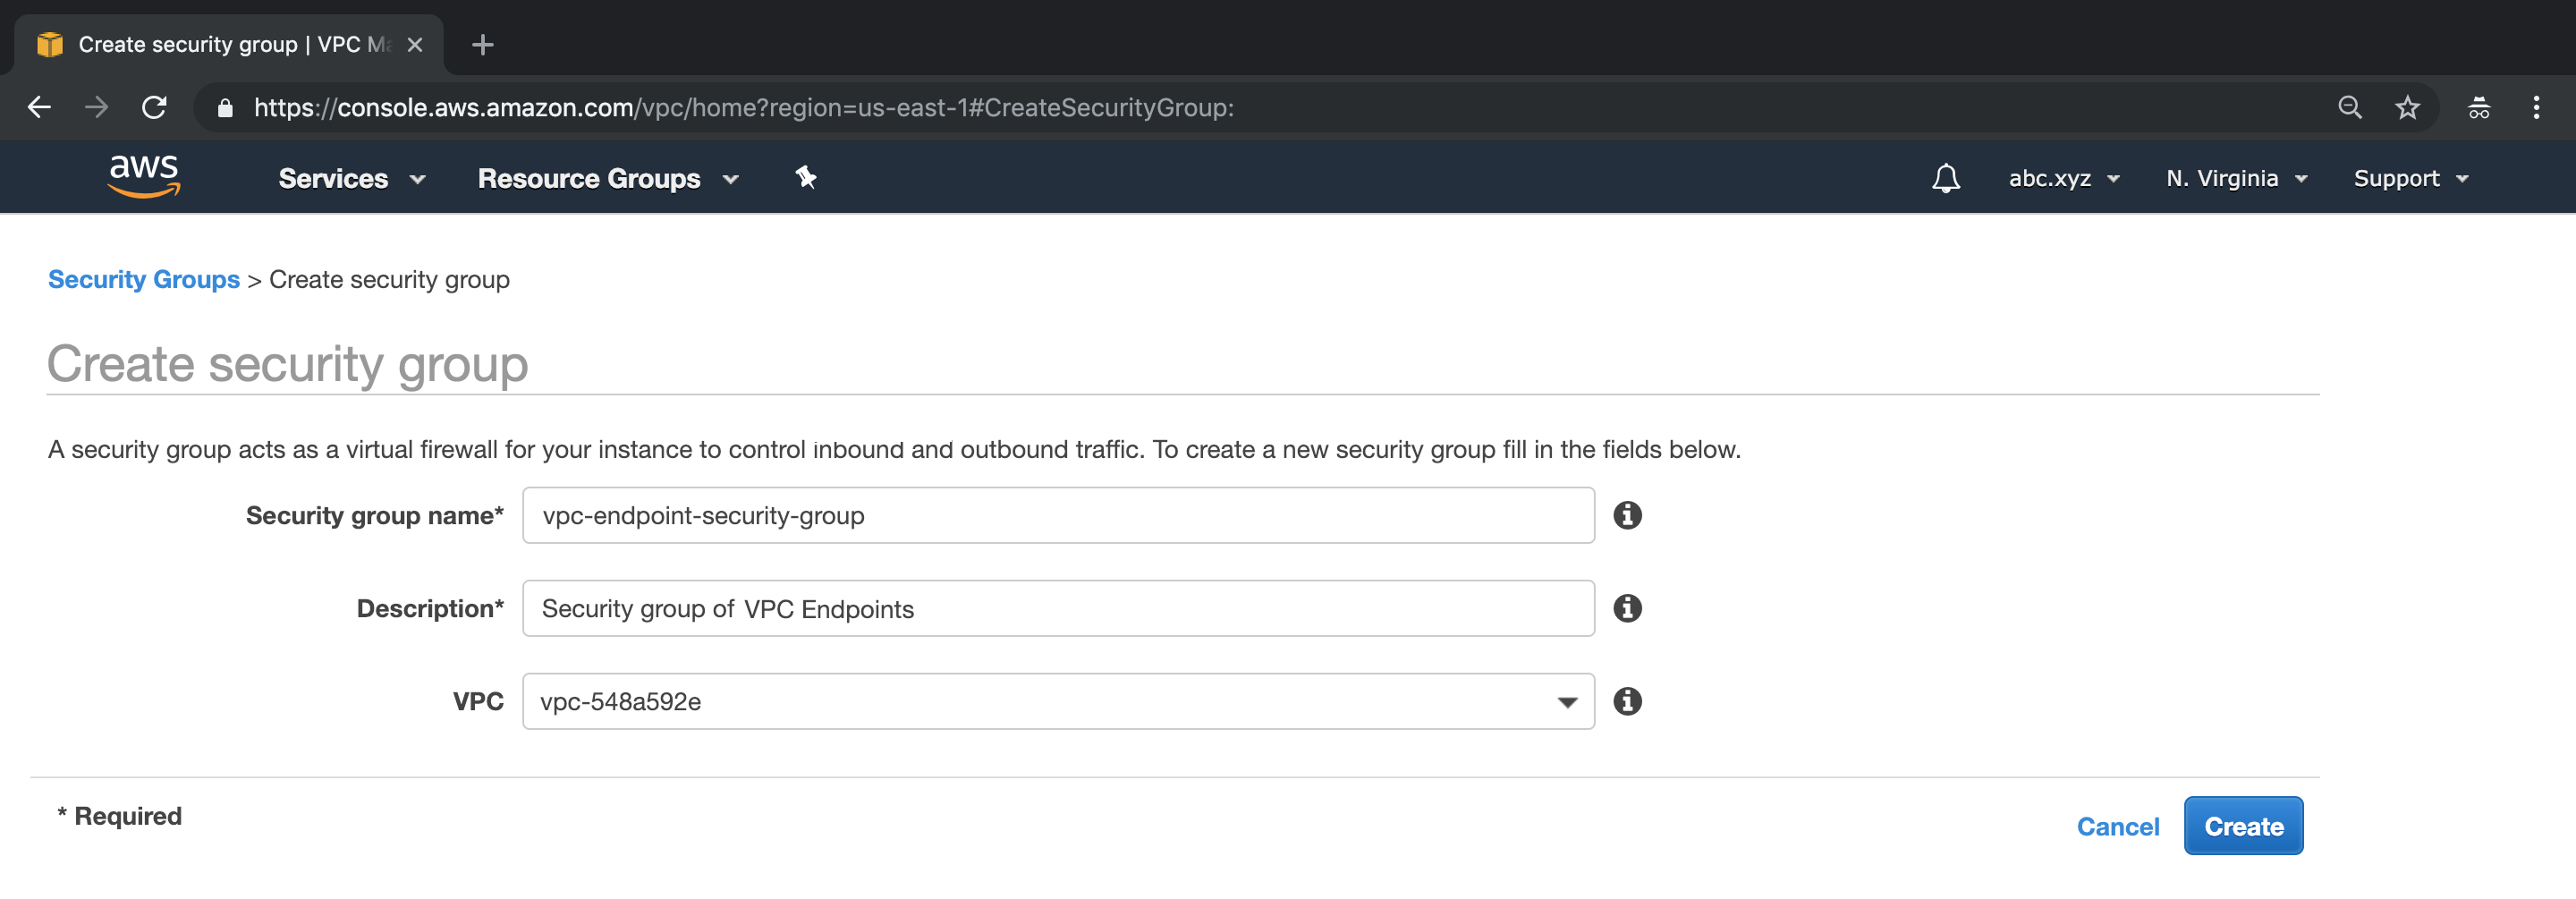 A screen capture showing the security group name and description being edited on the AWS Console